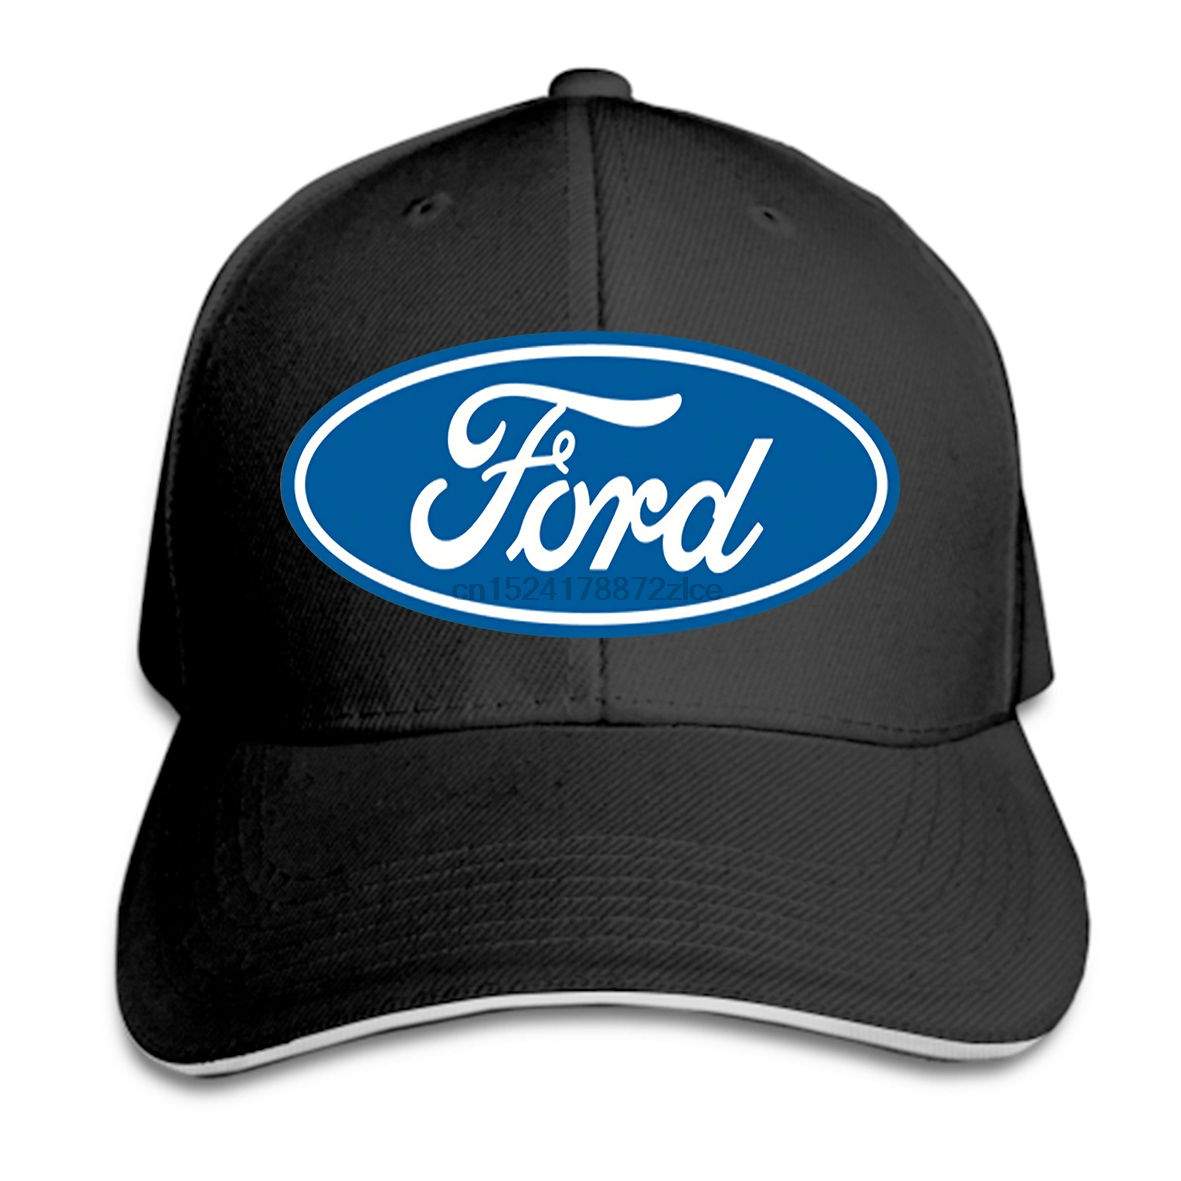 ce30f0aa944ae Buy ford hats and get free shipping on AliExpress.com